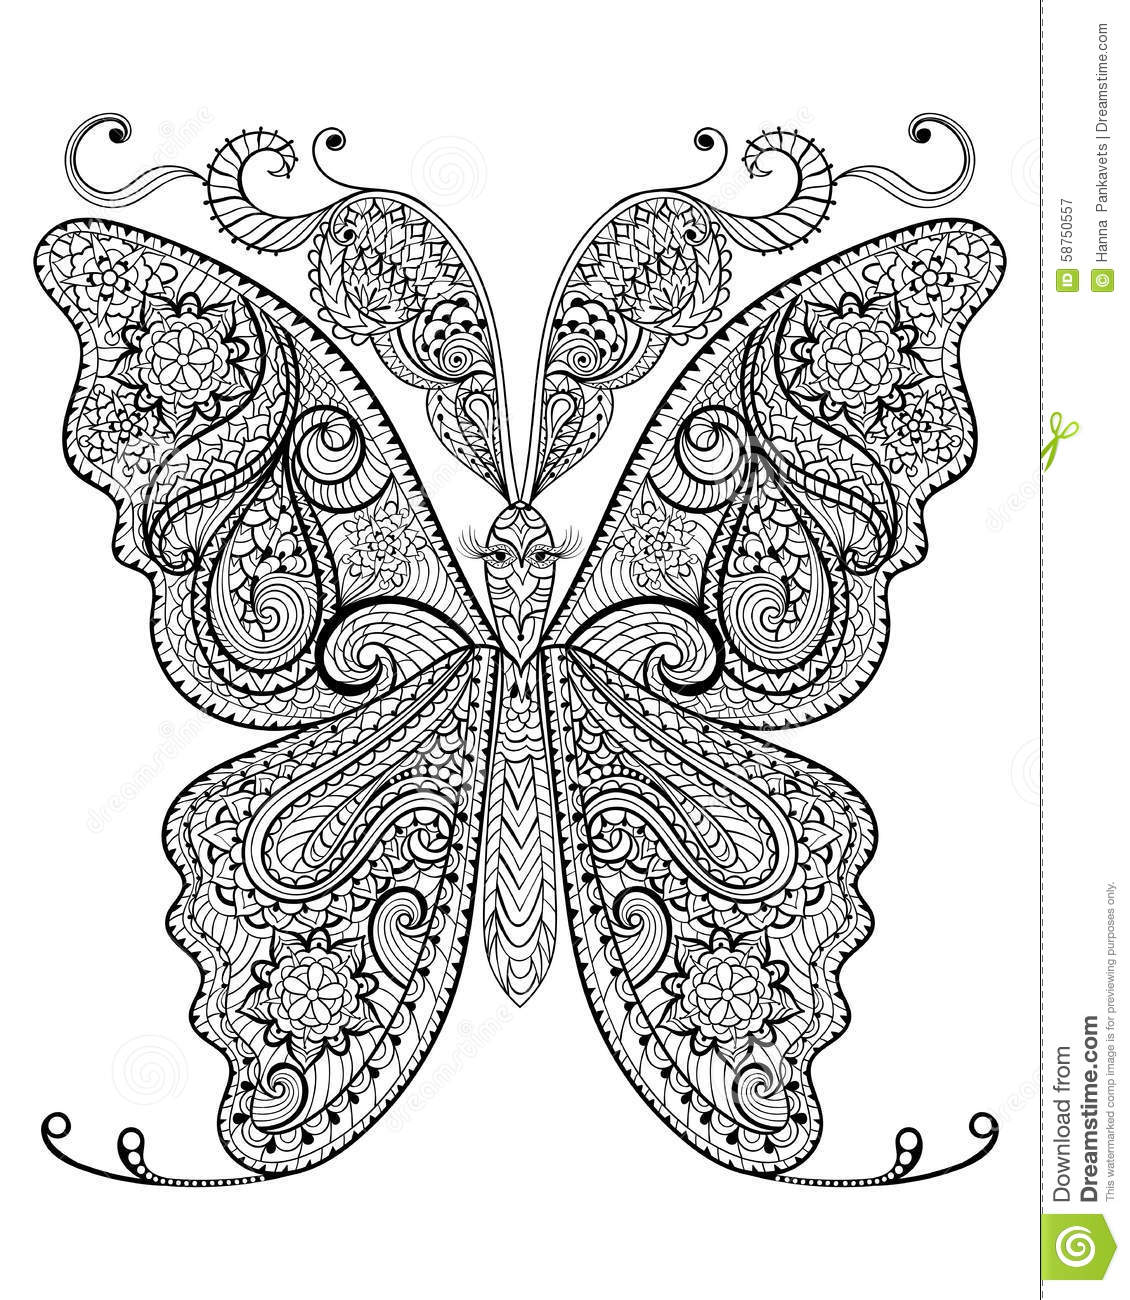 Hand Drawn Magic Butterfly For Adult Anti Stress Coloring Page With